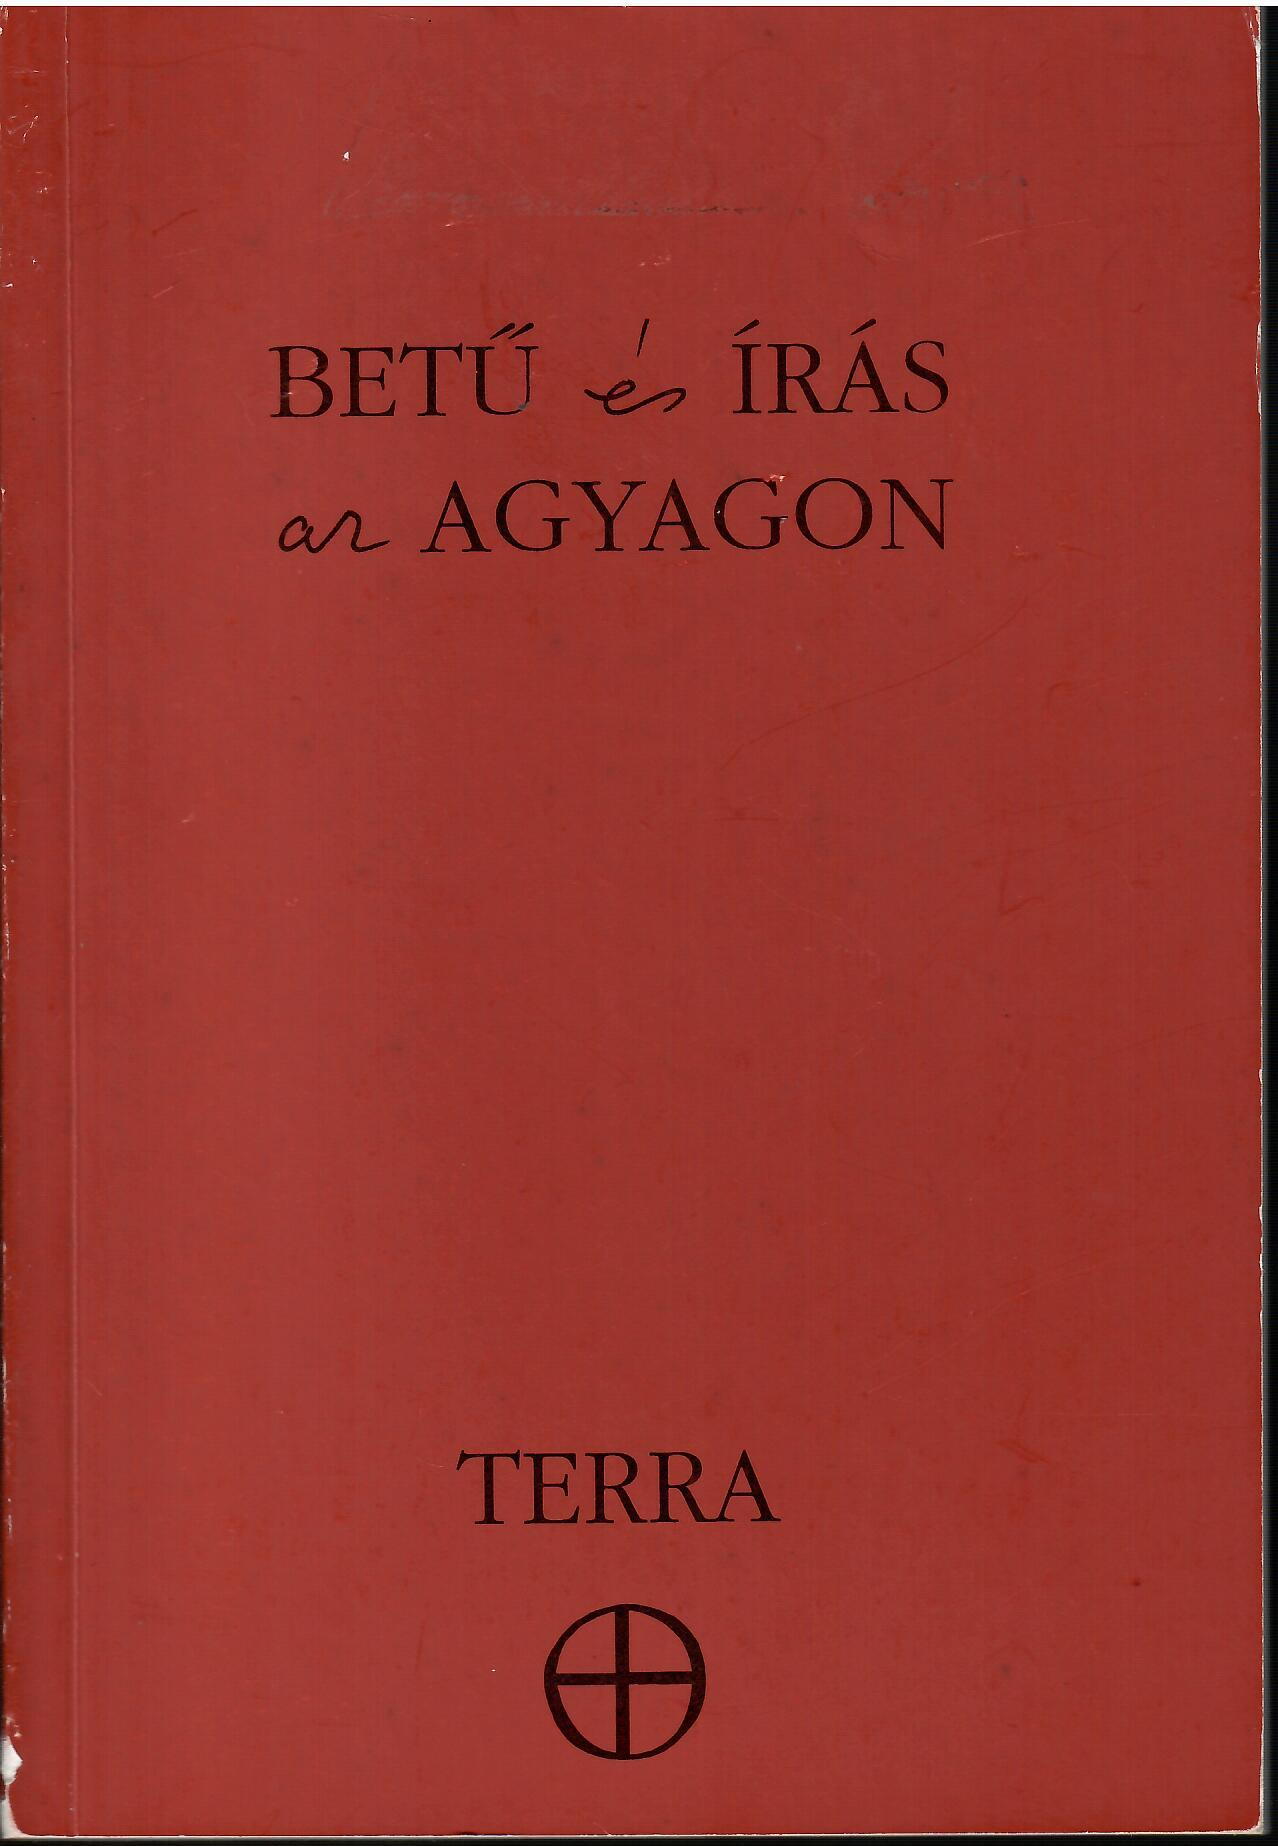 Image for Betu Es Iras Ar Agyagon; LETTER & WORD IN CLAY